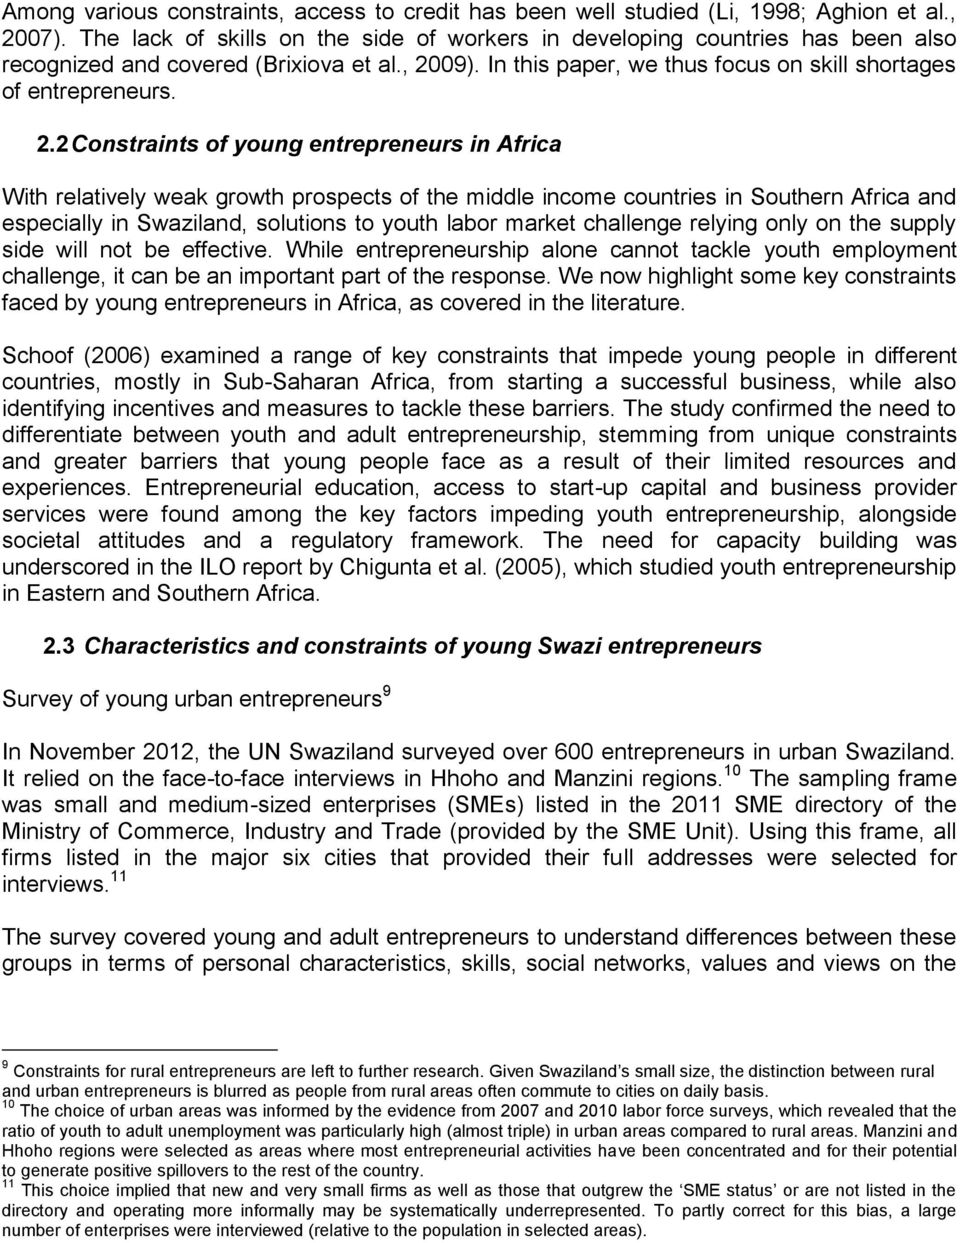 . Constraints of young entrepreneurs in frica With relatively weak growth prospects of the middle income countries in Southern frica and especially in Swaziland, solutions to youth labor market